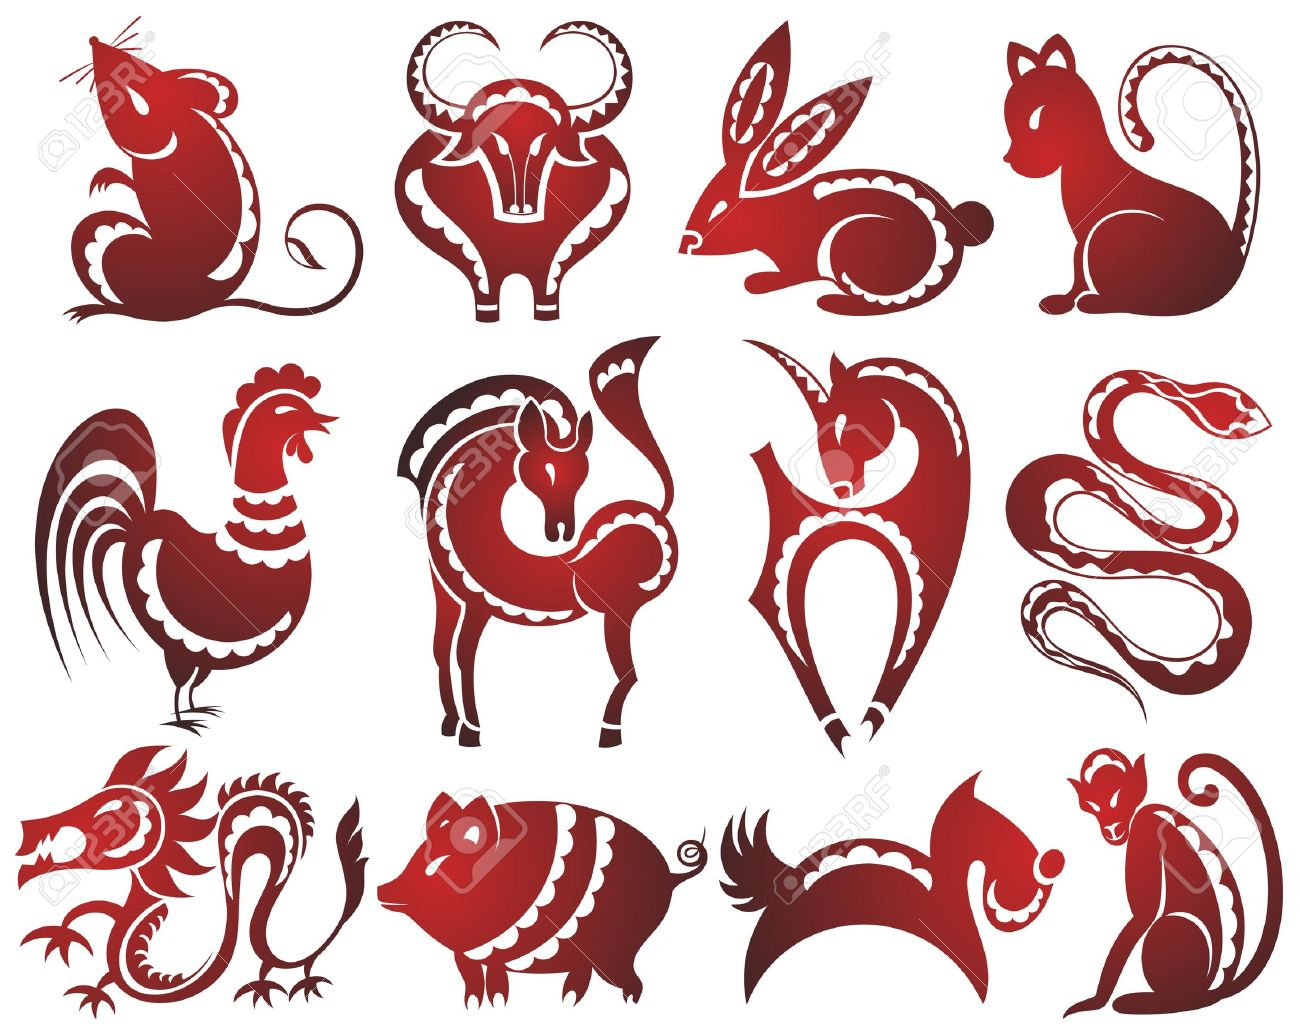 Kun Lun - (China) 34343623-12-chinese-zodiac-signs-Stock-Photo